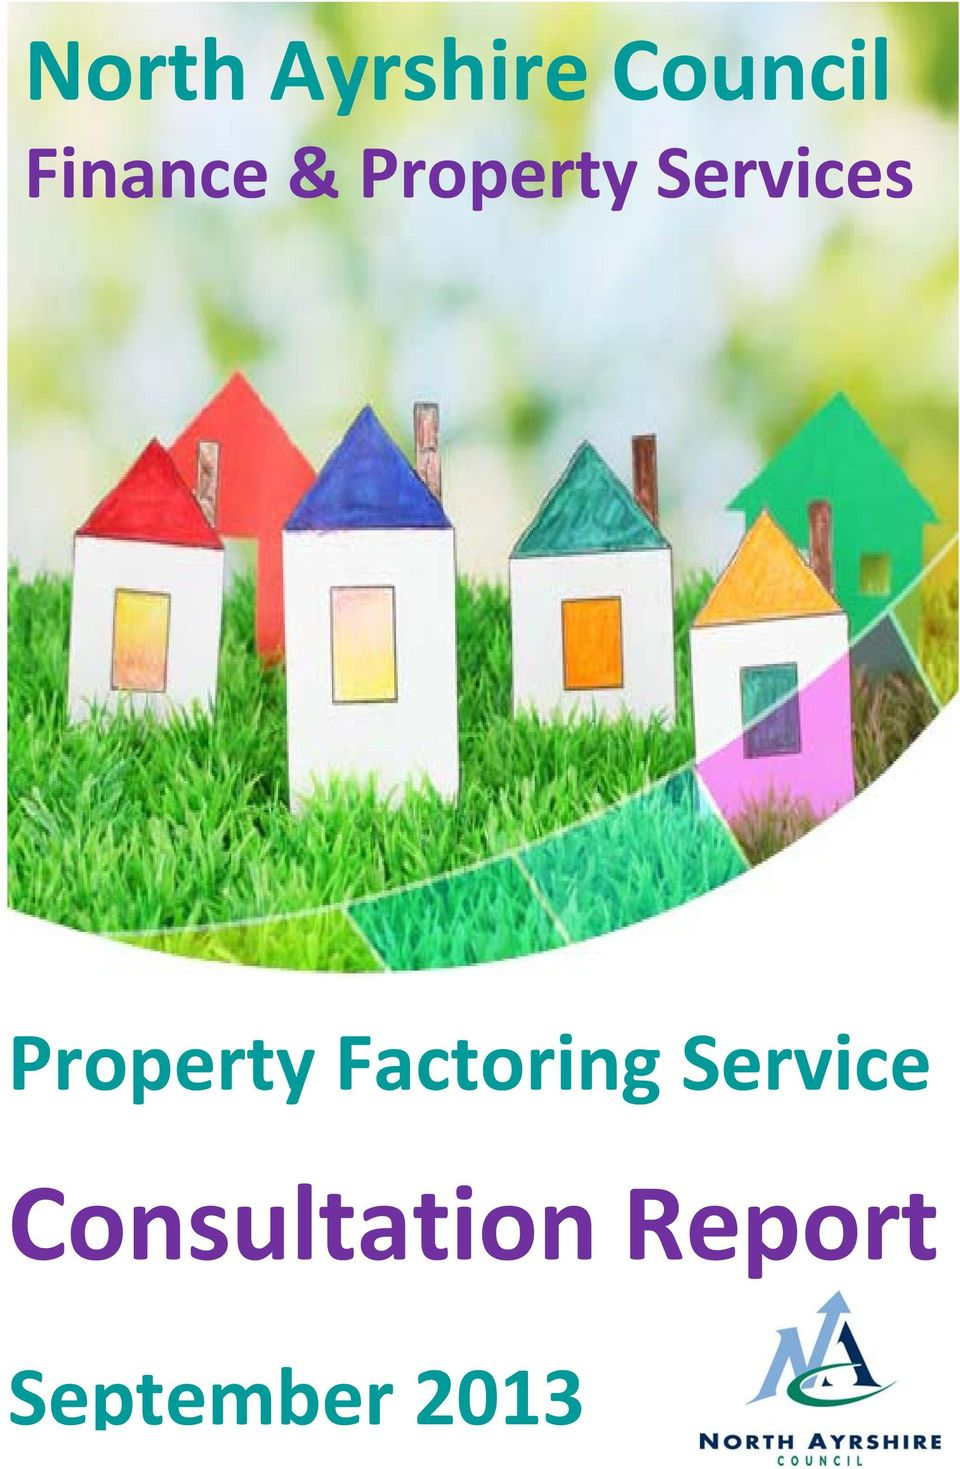 Property Factoring Service